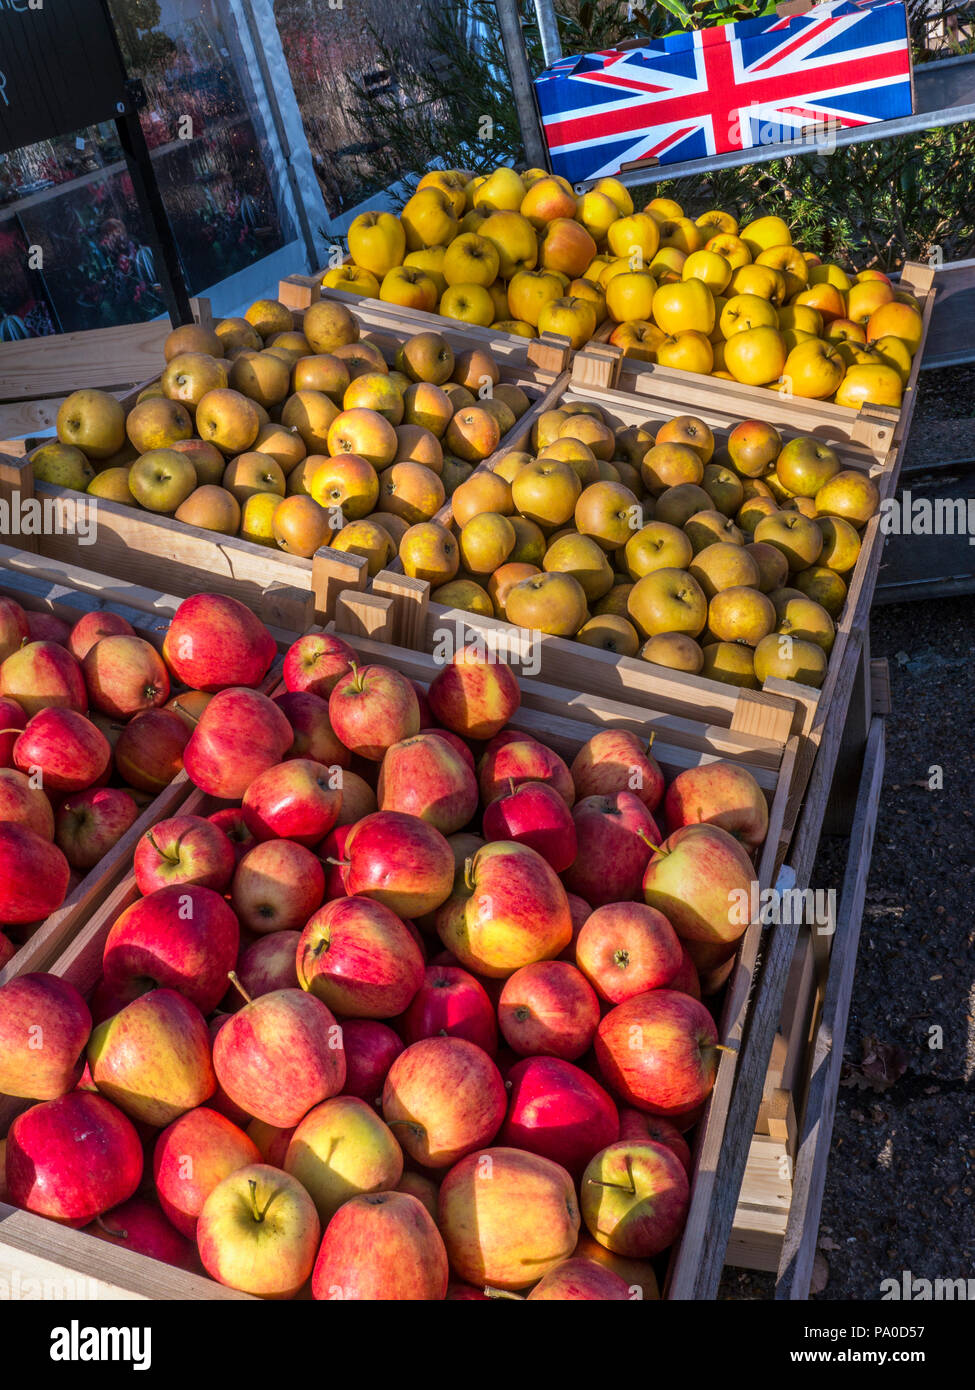 English Apples on sale at Farmers Market stall (L-R) Pinova / Russet / Opal apples illuminated in late autumn sunshine with Union Jack on apple crate - Stock Image